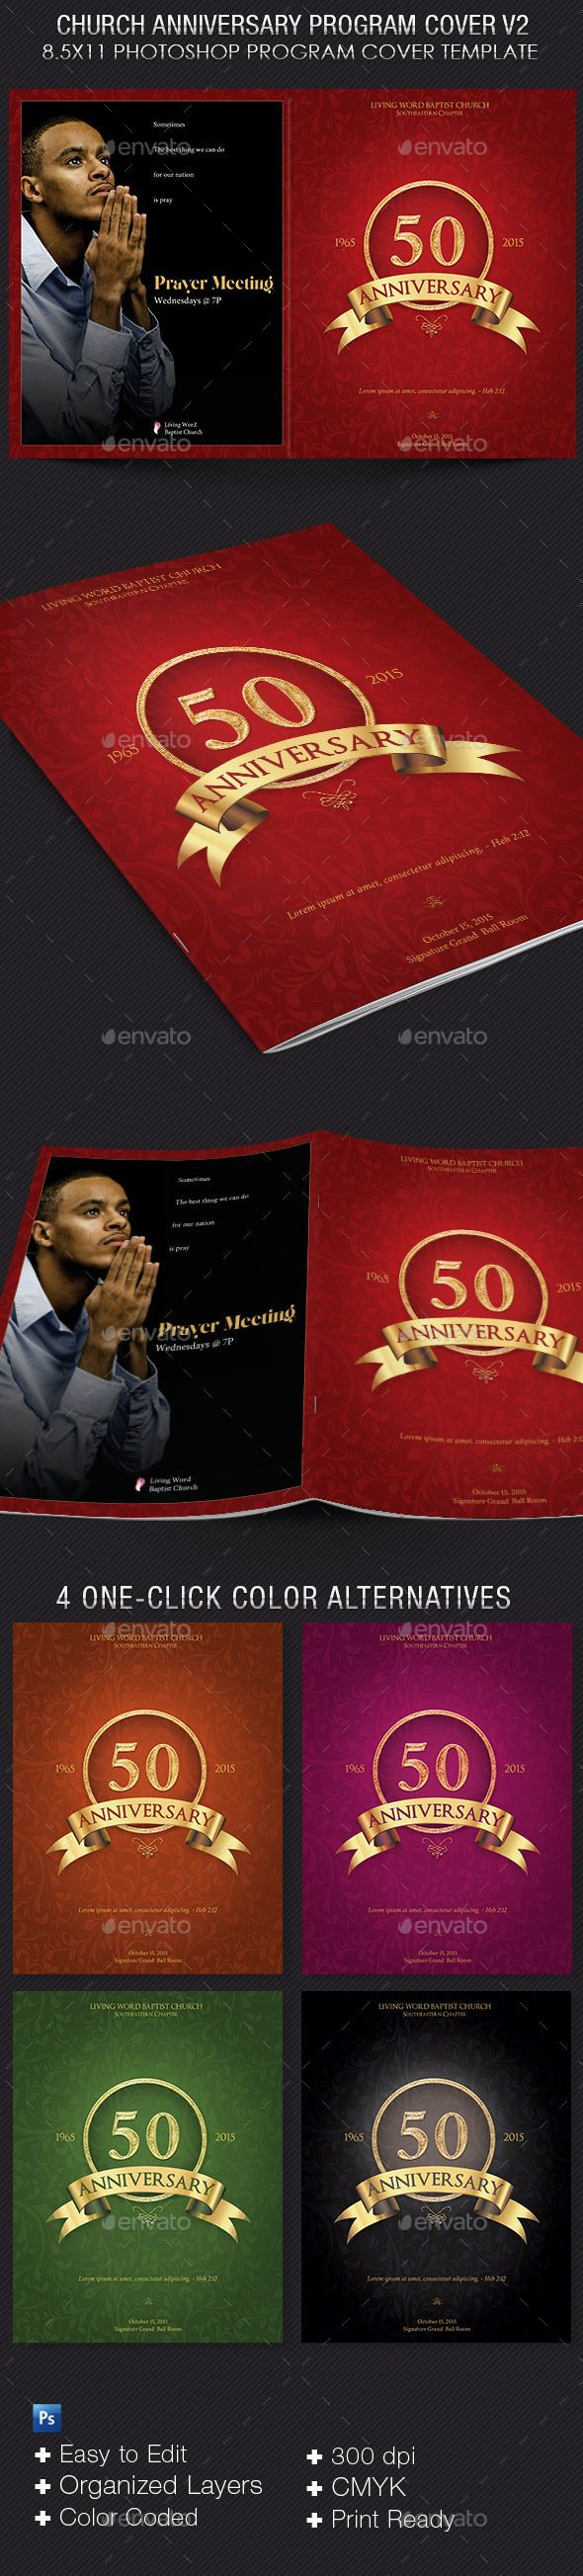 Church anniversary program cover template v2 template print church anniversary program cover template v2 by 4cgraphic church anniversary program cover template v2 is designed with a vintage theme that will give a maxwellsz